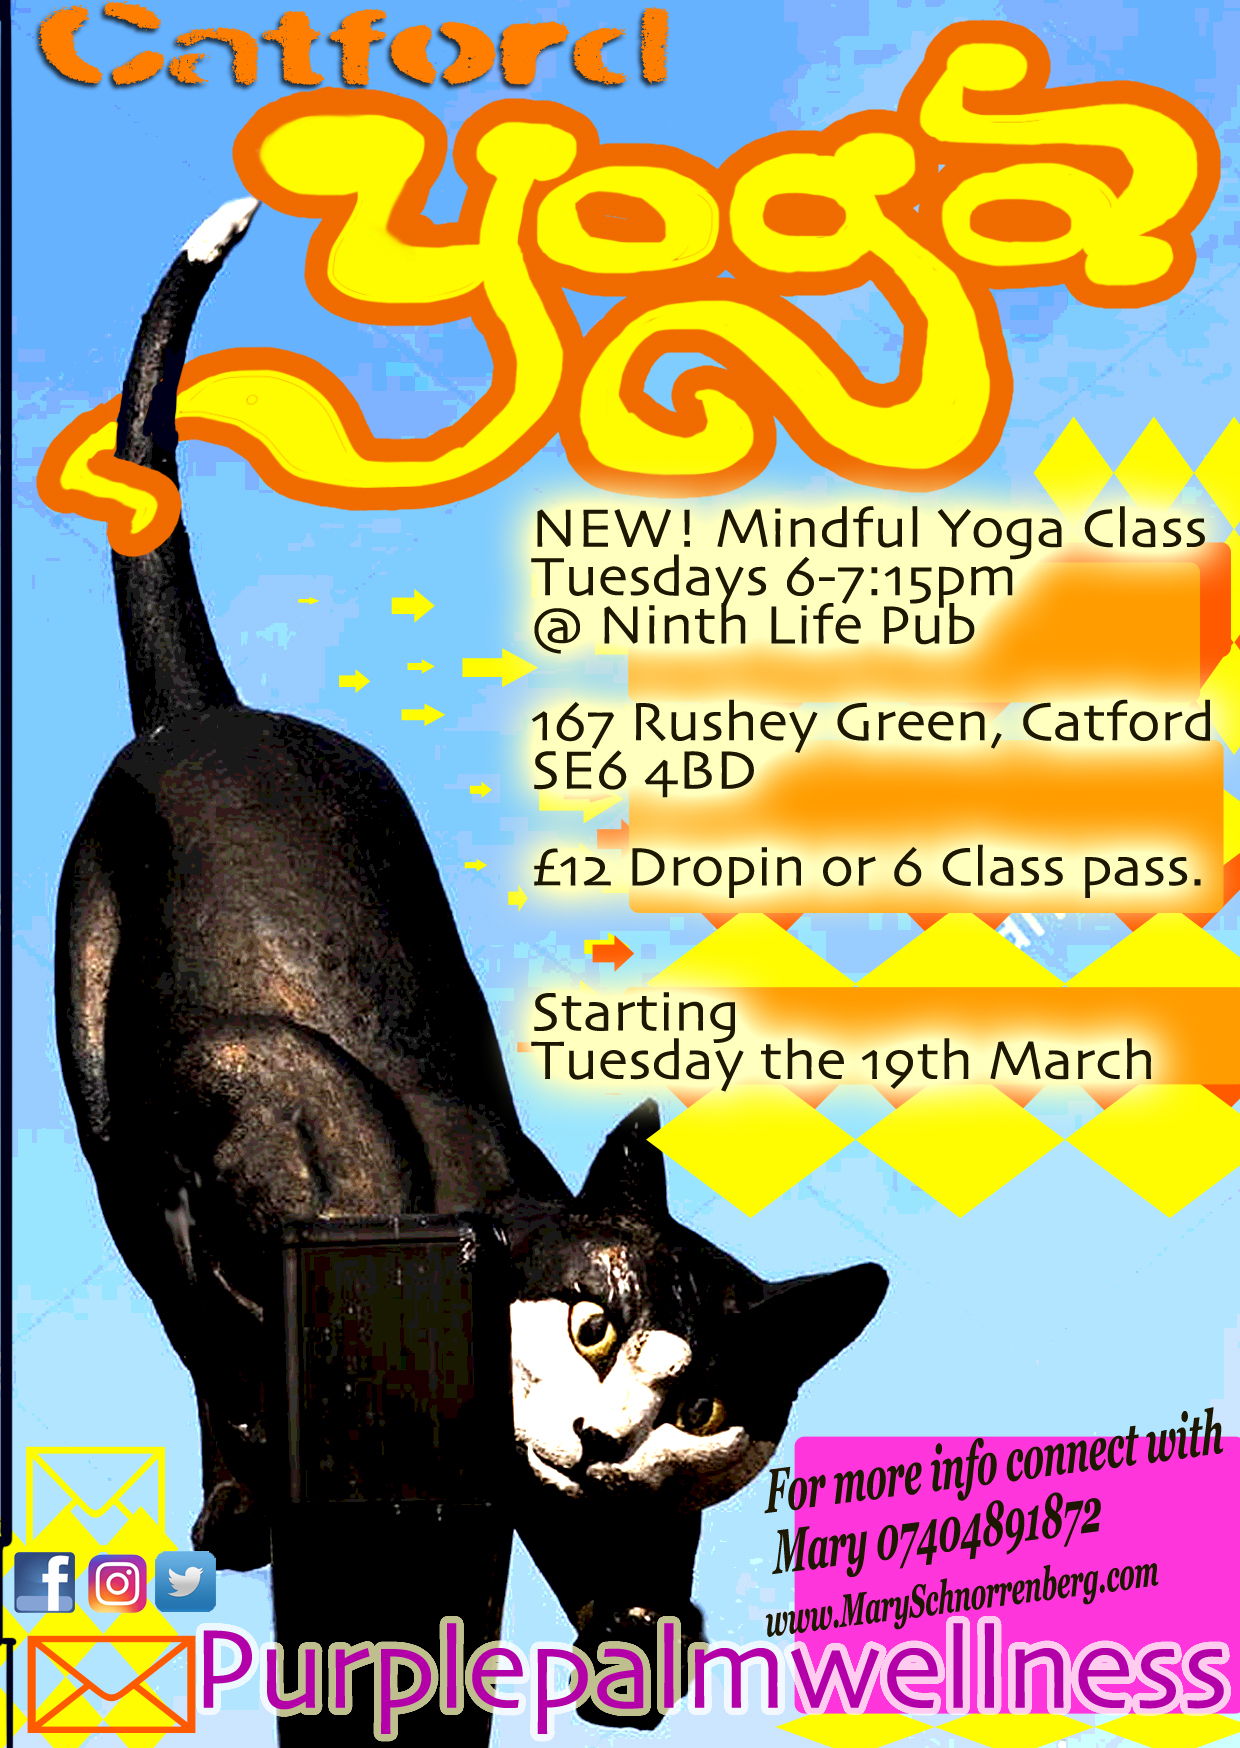 Mary yoga flyer.jpg